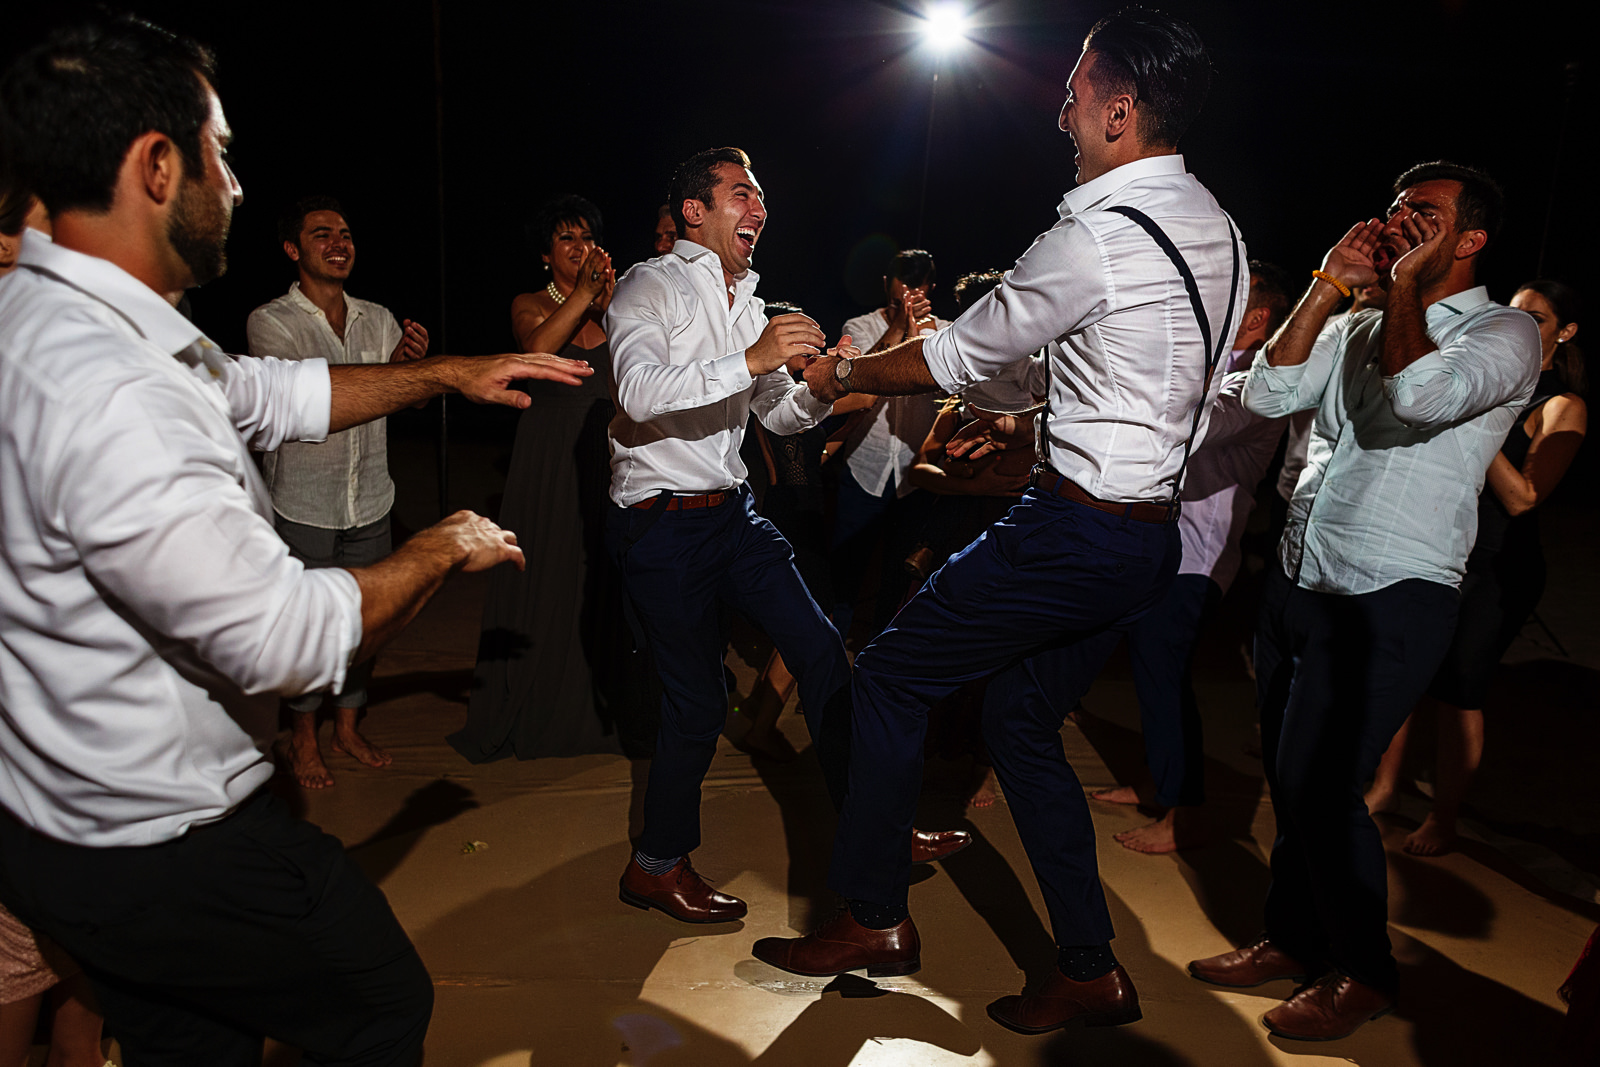 Groom and best-man dancing in one leg at the wedding party